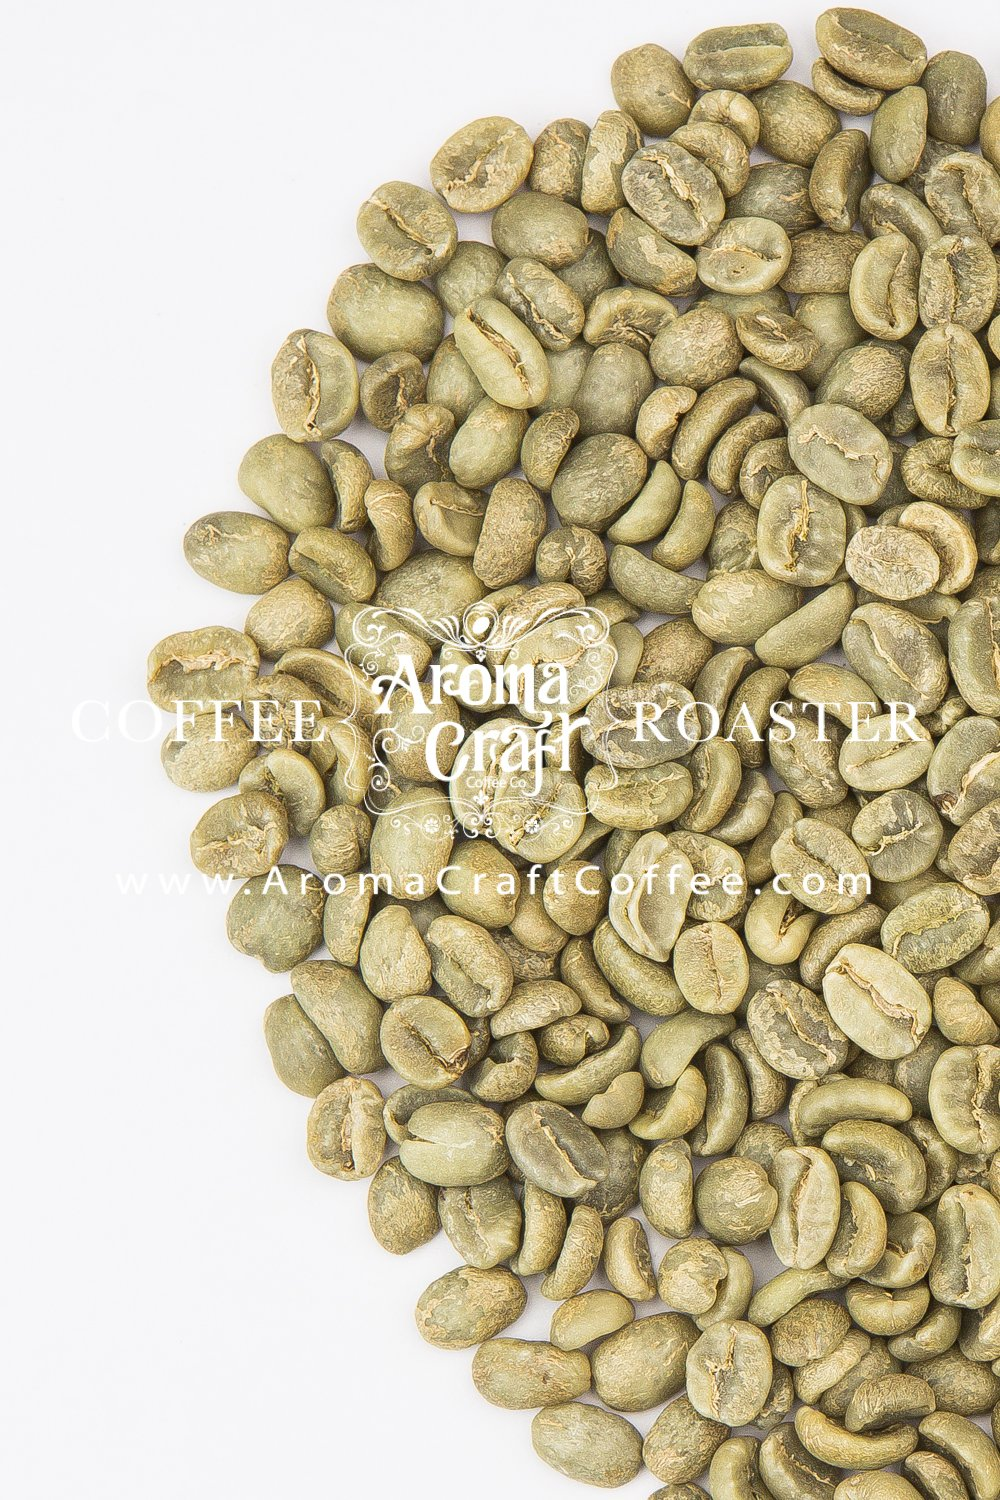 Organic Guatemala Triple Picked Unroasted Green Coffee Beans (10 LB) by Aroma Craft Coffee